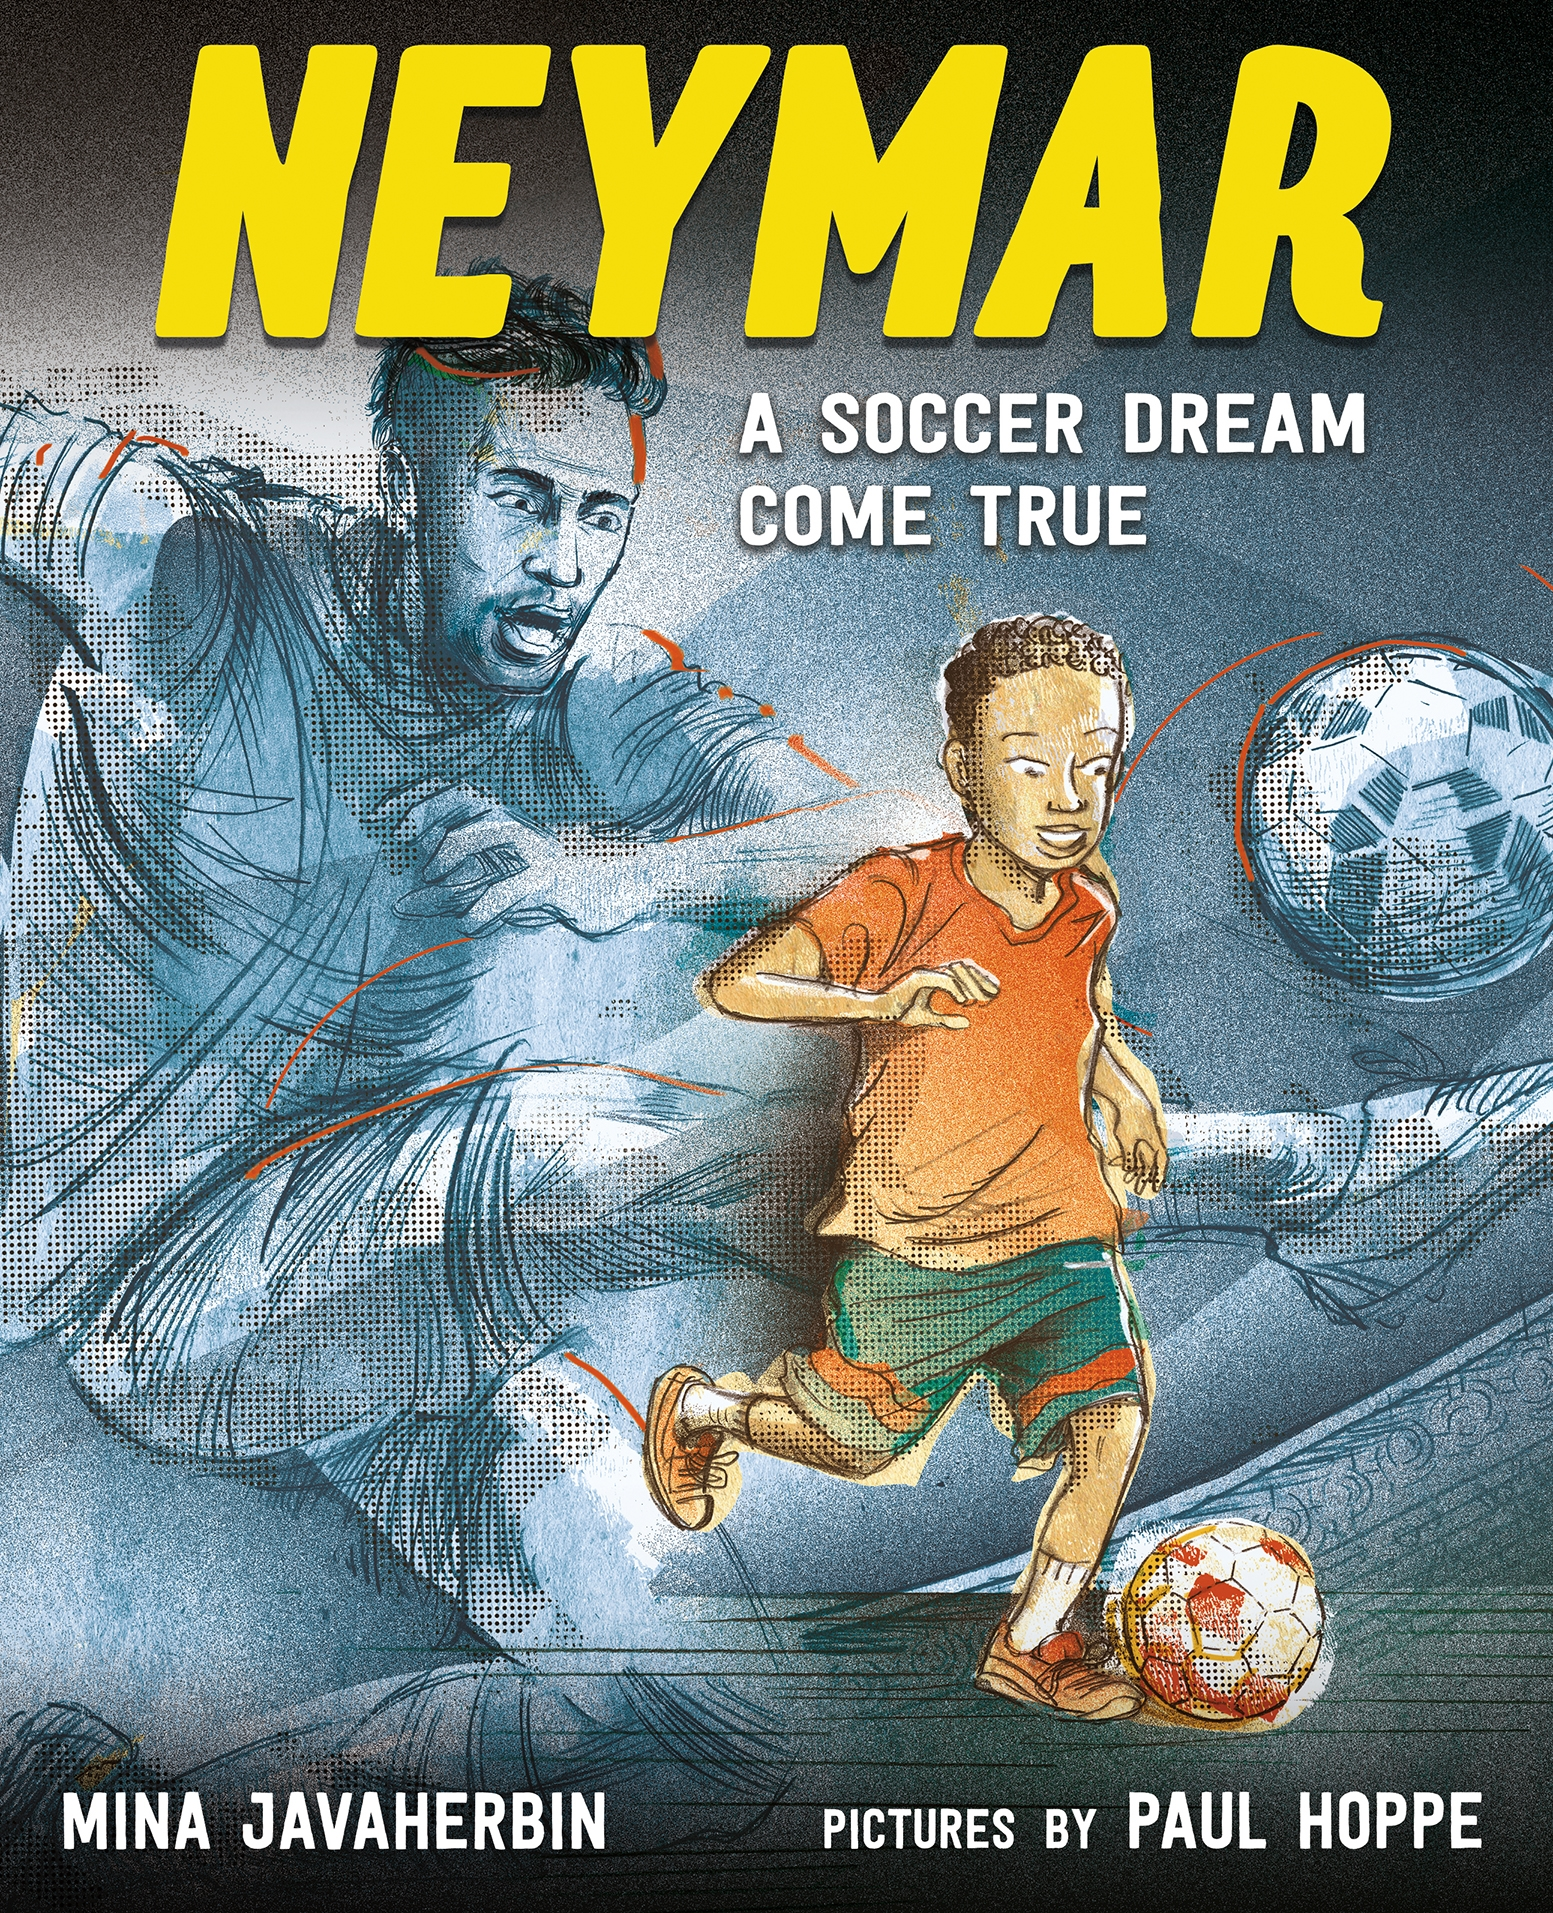 Sunday Story Time with Paul Hoppe (Illustrator of Neymar: A Soccer Dream Come True)